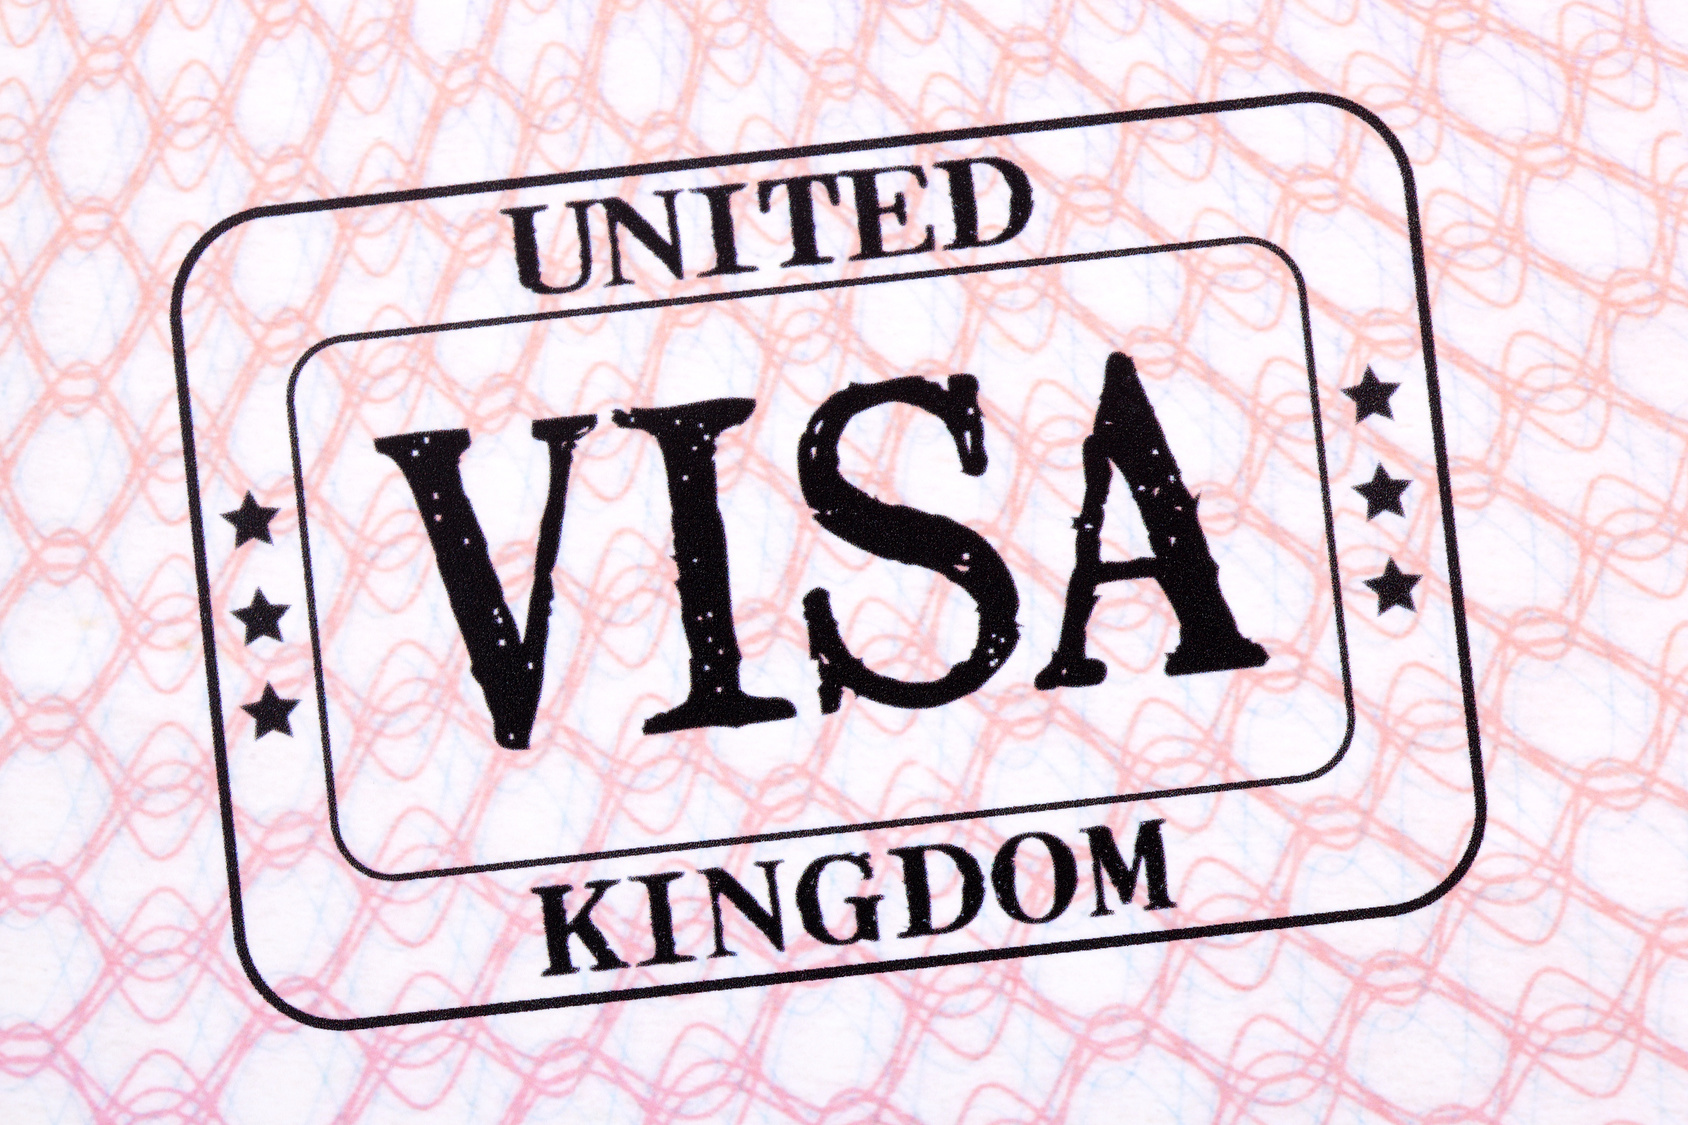 UK Tier 2 visa stamp